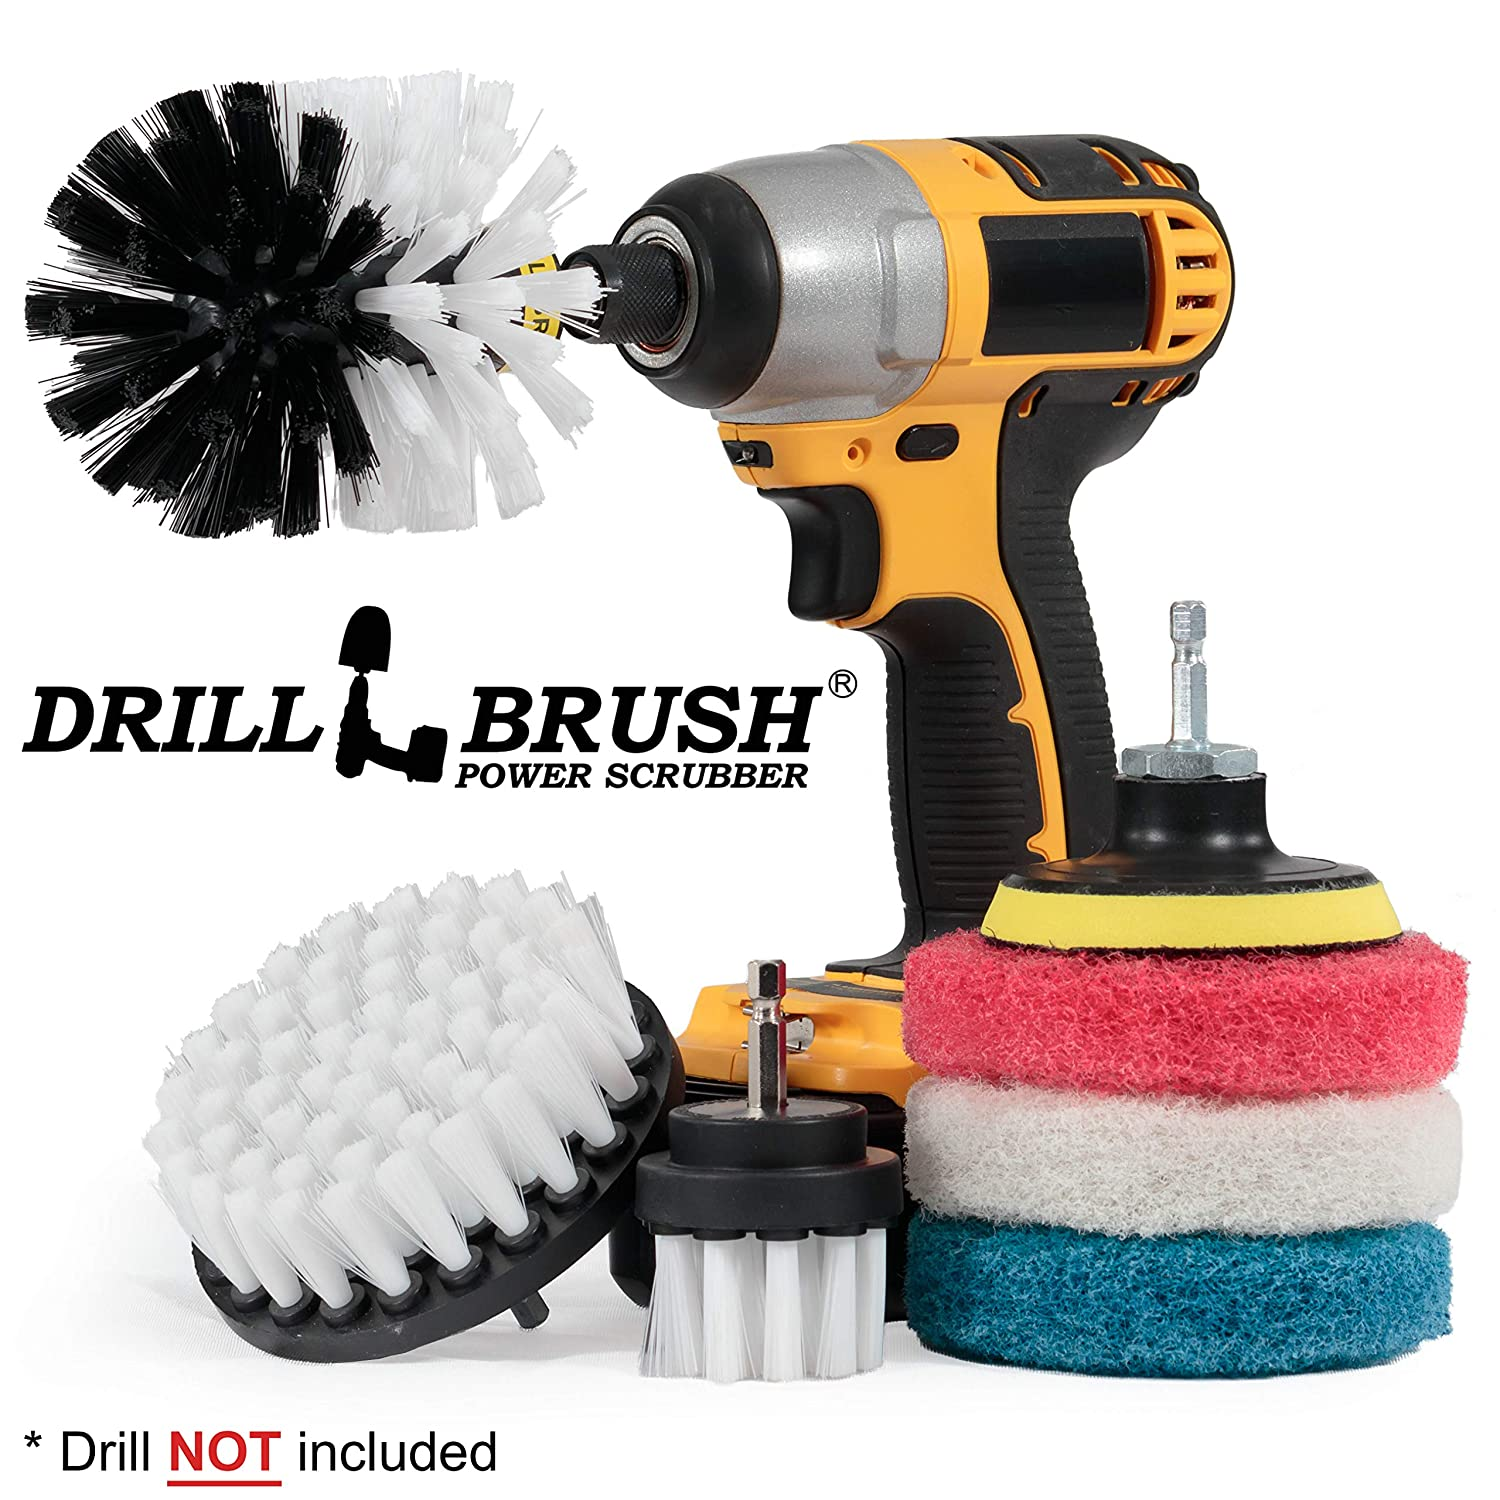 Drillbrush Cleaning Supplies   Detail Brush Set   Upholstery Cleaner   Carpet Cleaner Scrub Brush   Auto... by Drillbrush